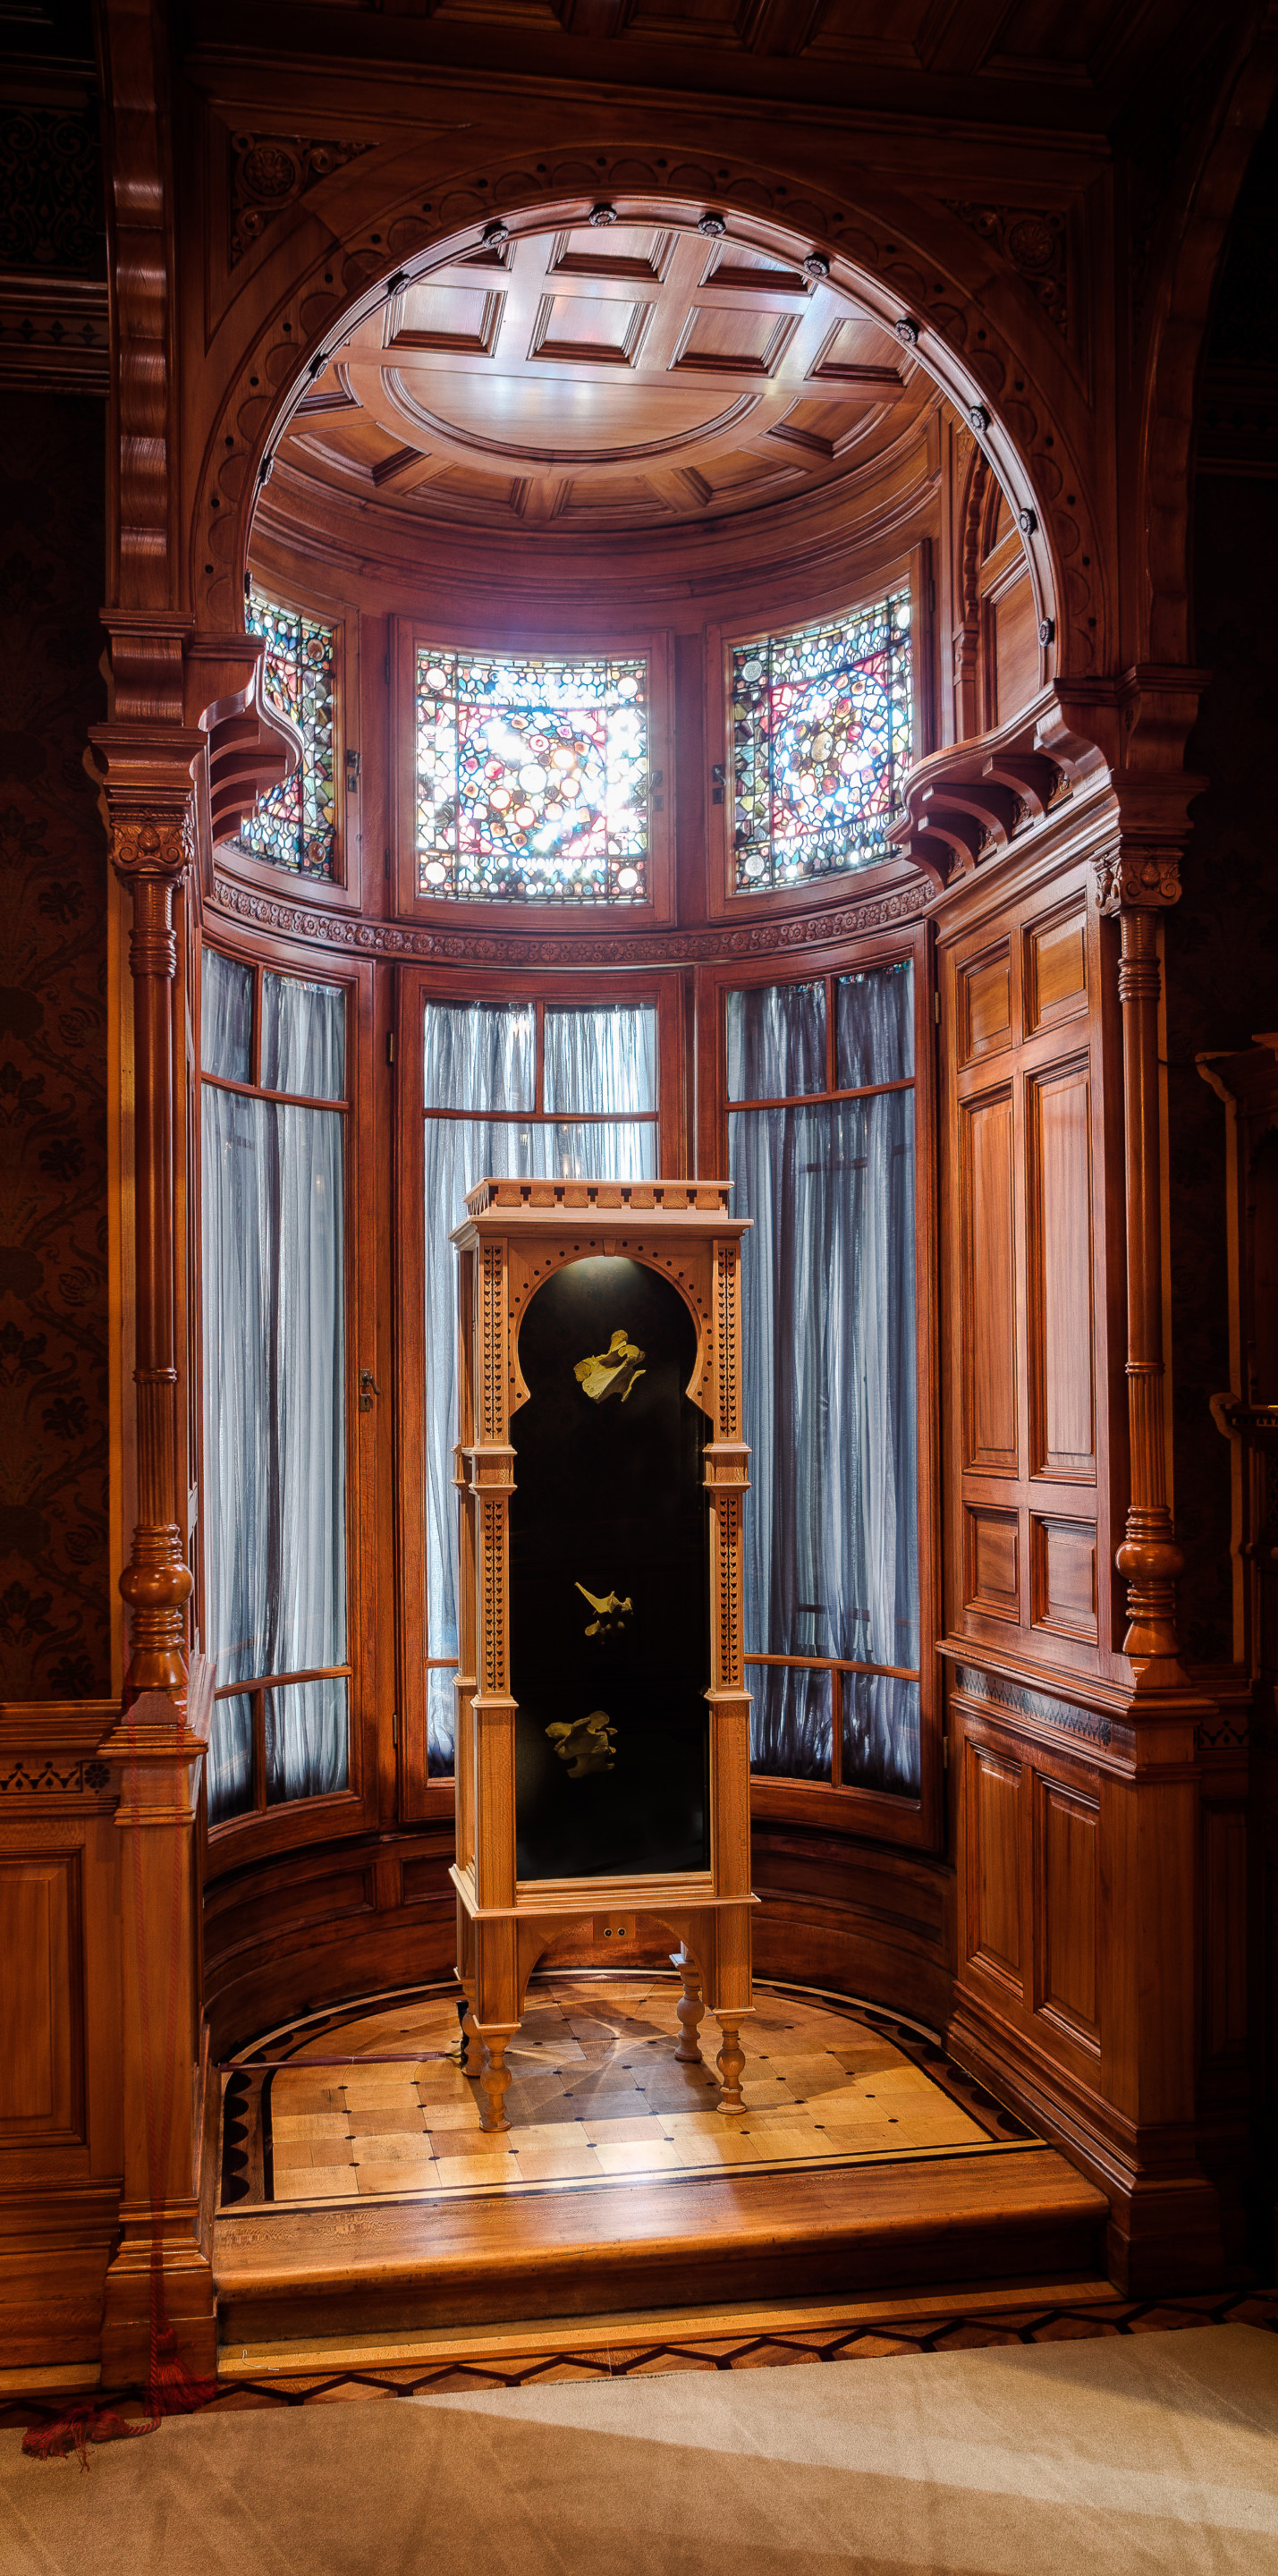 Image of a tall wooden cabinet beneath a key arch